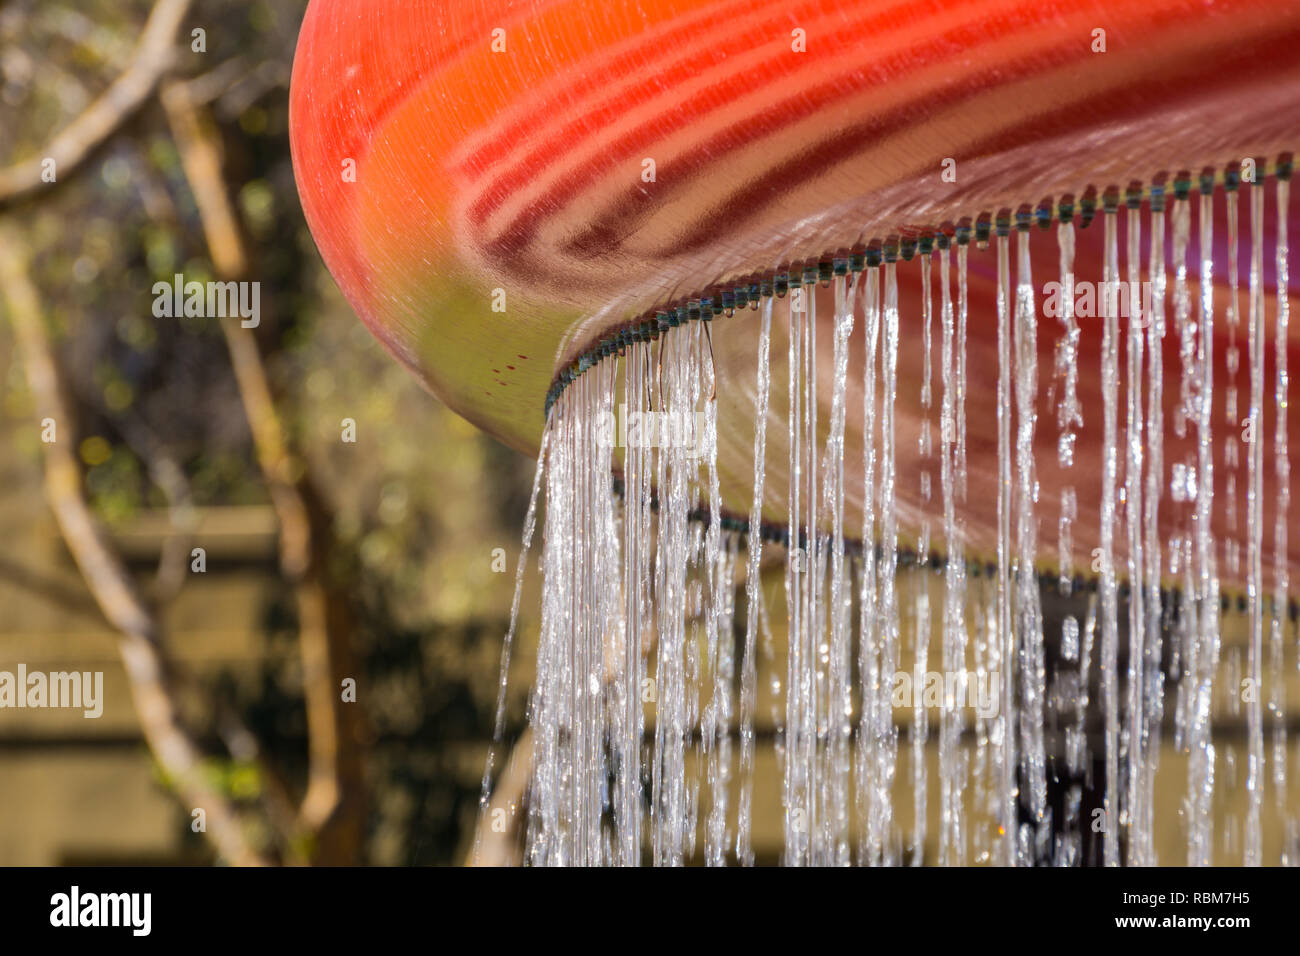 Detail of a water curtain, California - Stock Image